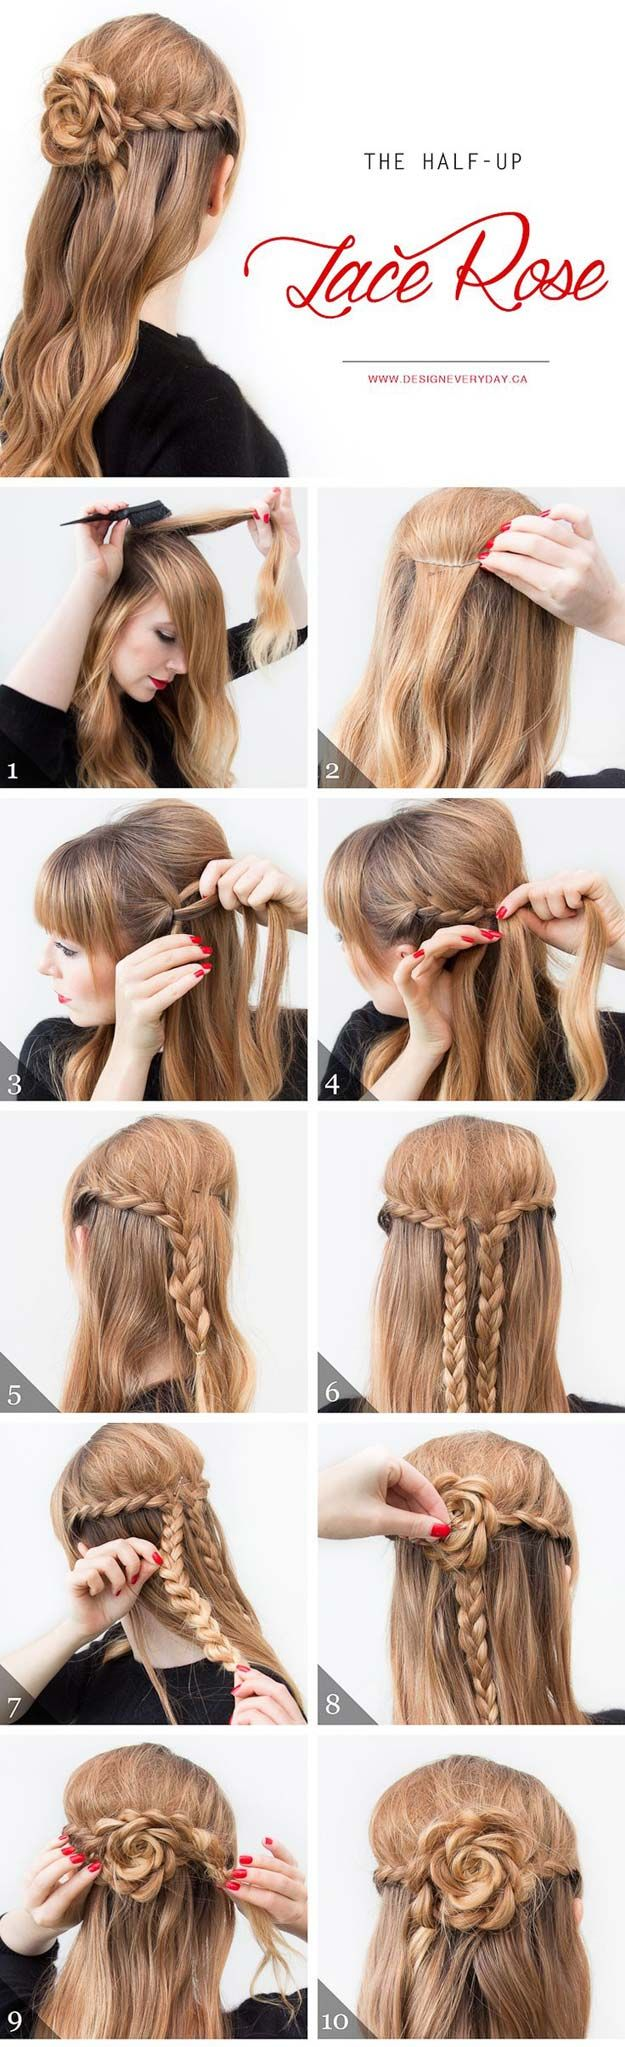 Cool and Easy DIY Hairstyles - The Half Up Lace Rose - Quick and Easy Ideas for Back to School Styles for Medium, Short and Long Hair - Fun Tips and Best Step by Step Tutorials for Teens, Prom, Weddings, Special Occasions and Work. Up dos, Braids, Top Knots and Buns, Super Summer Looks http://diyprojectsforteens.com/diy-cool-easy-hairstyles